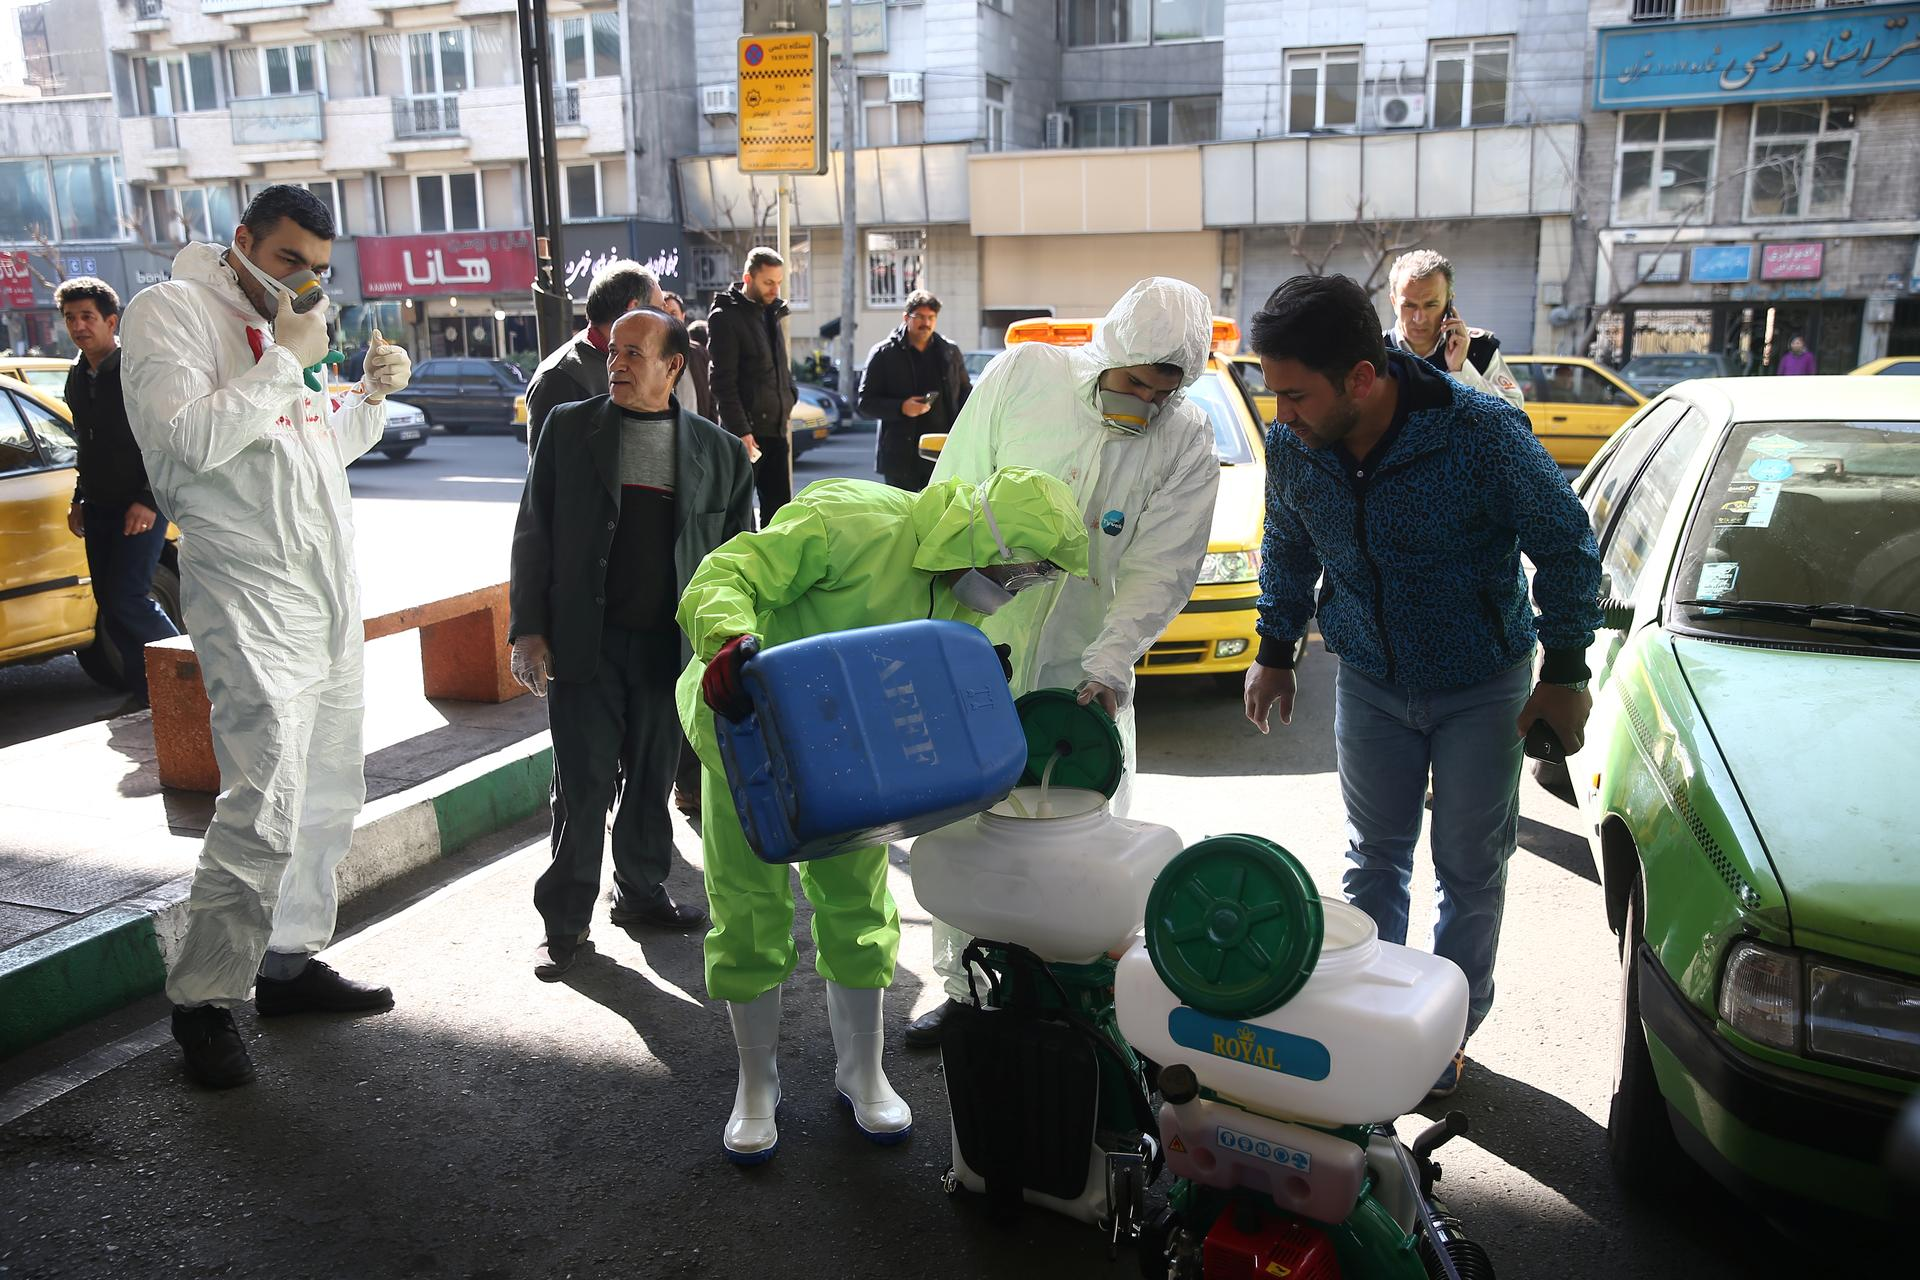 Iran's death toll from coronavirus reaches 724, says health official